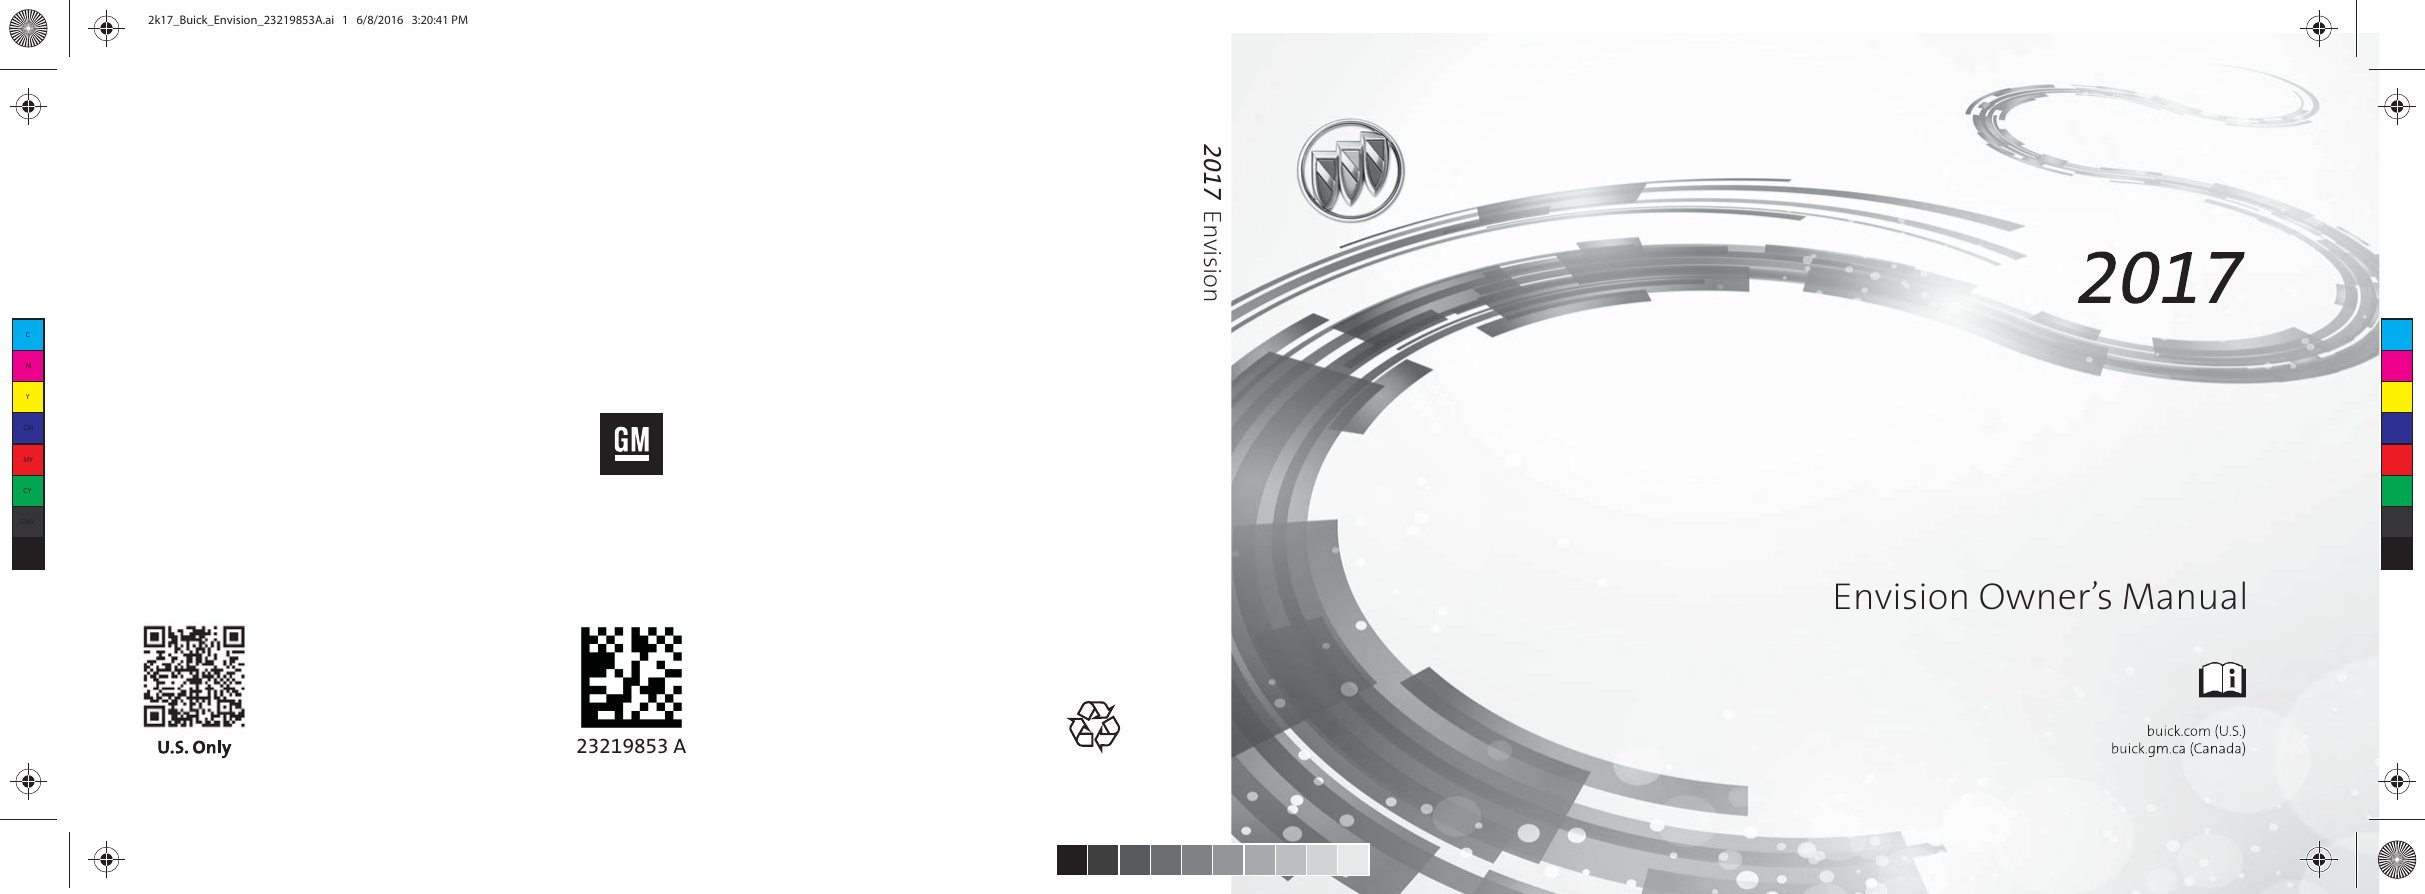 buick envision owners manual